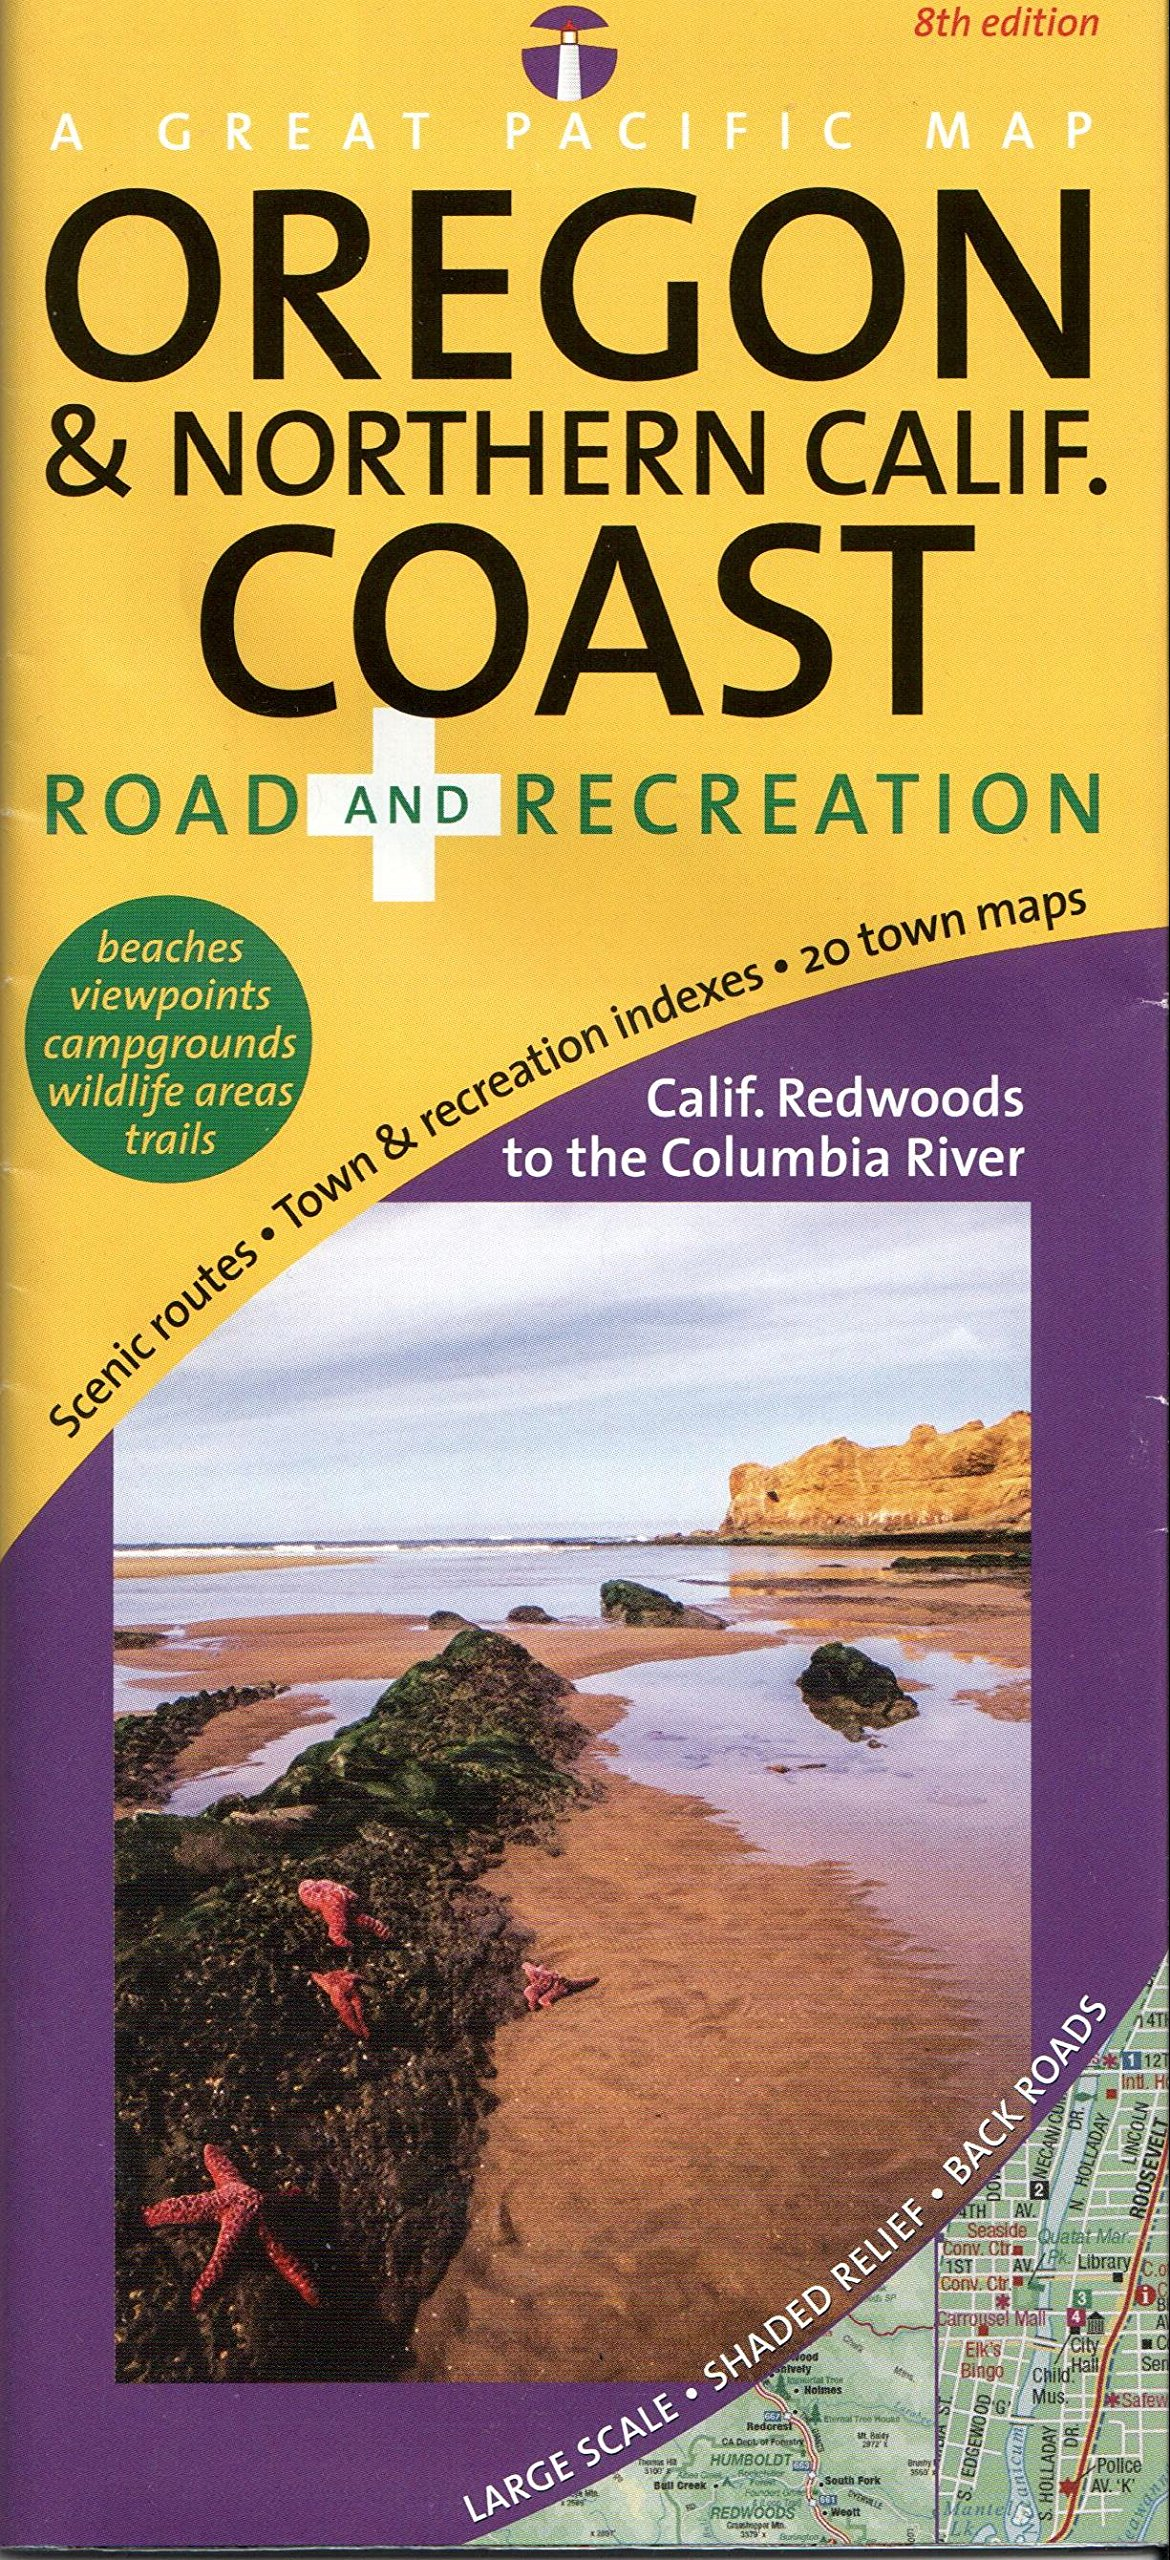 Oregon northern california coast road recreation map 8th oregon northern california coast road recreation map 8th edition david jr peckarsky cartography by bob lindquist rob kemp 9780938011811 fandeluxe